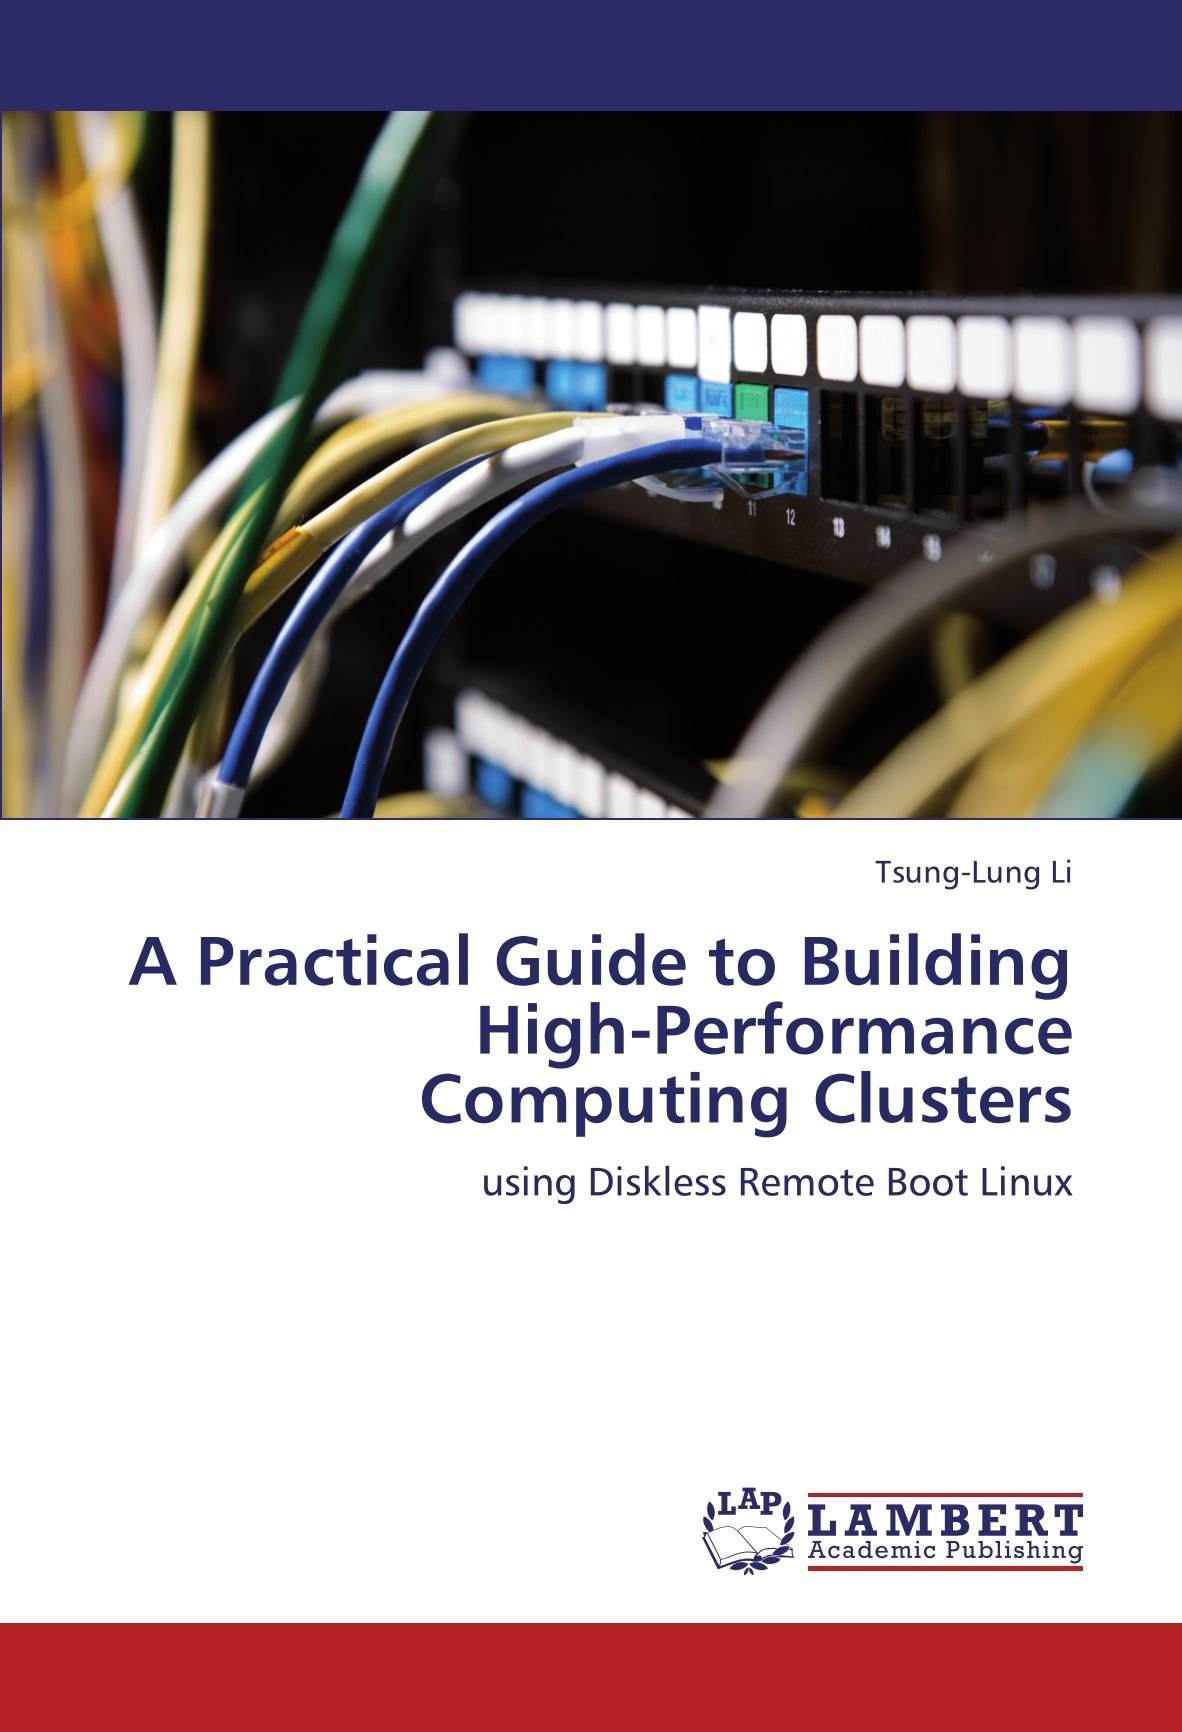 A Practical Guide to Building High-Performance Computing